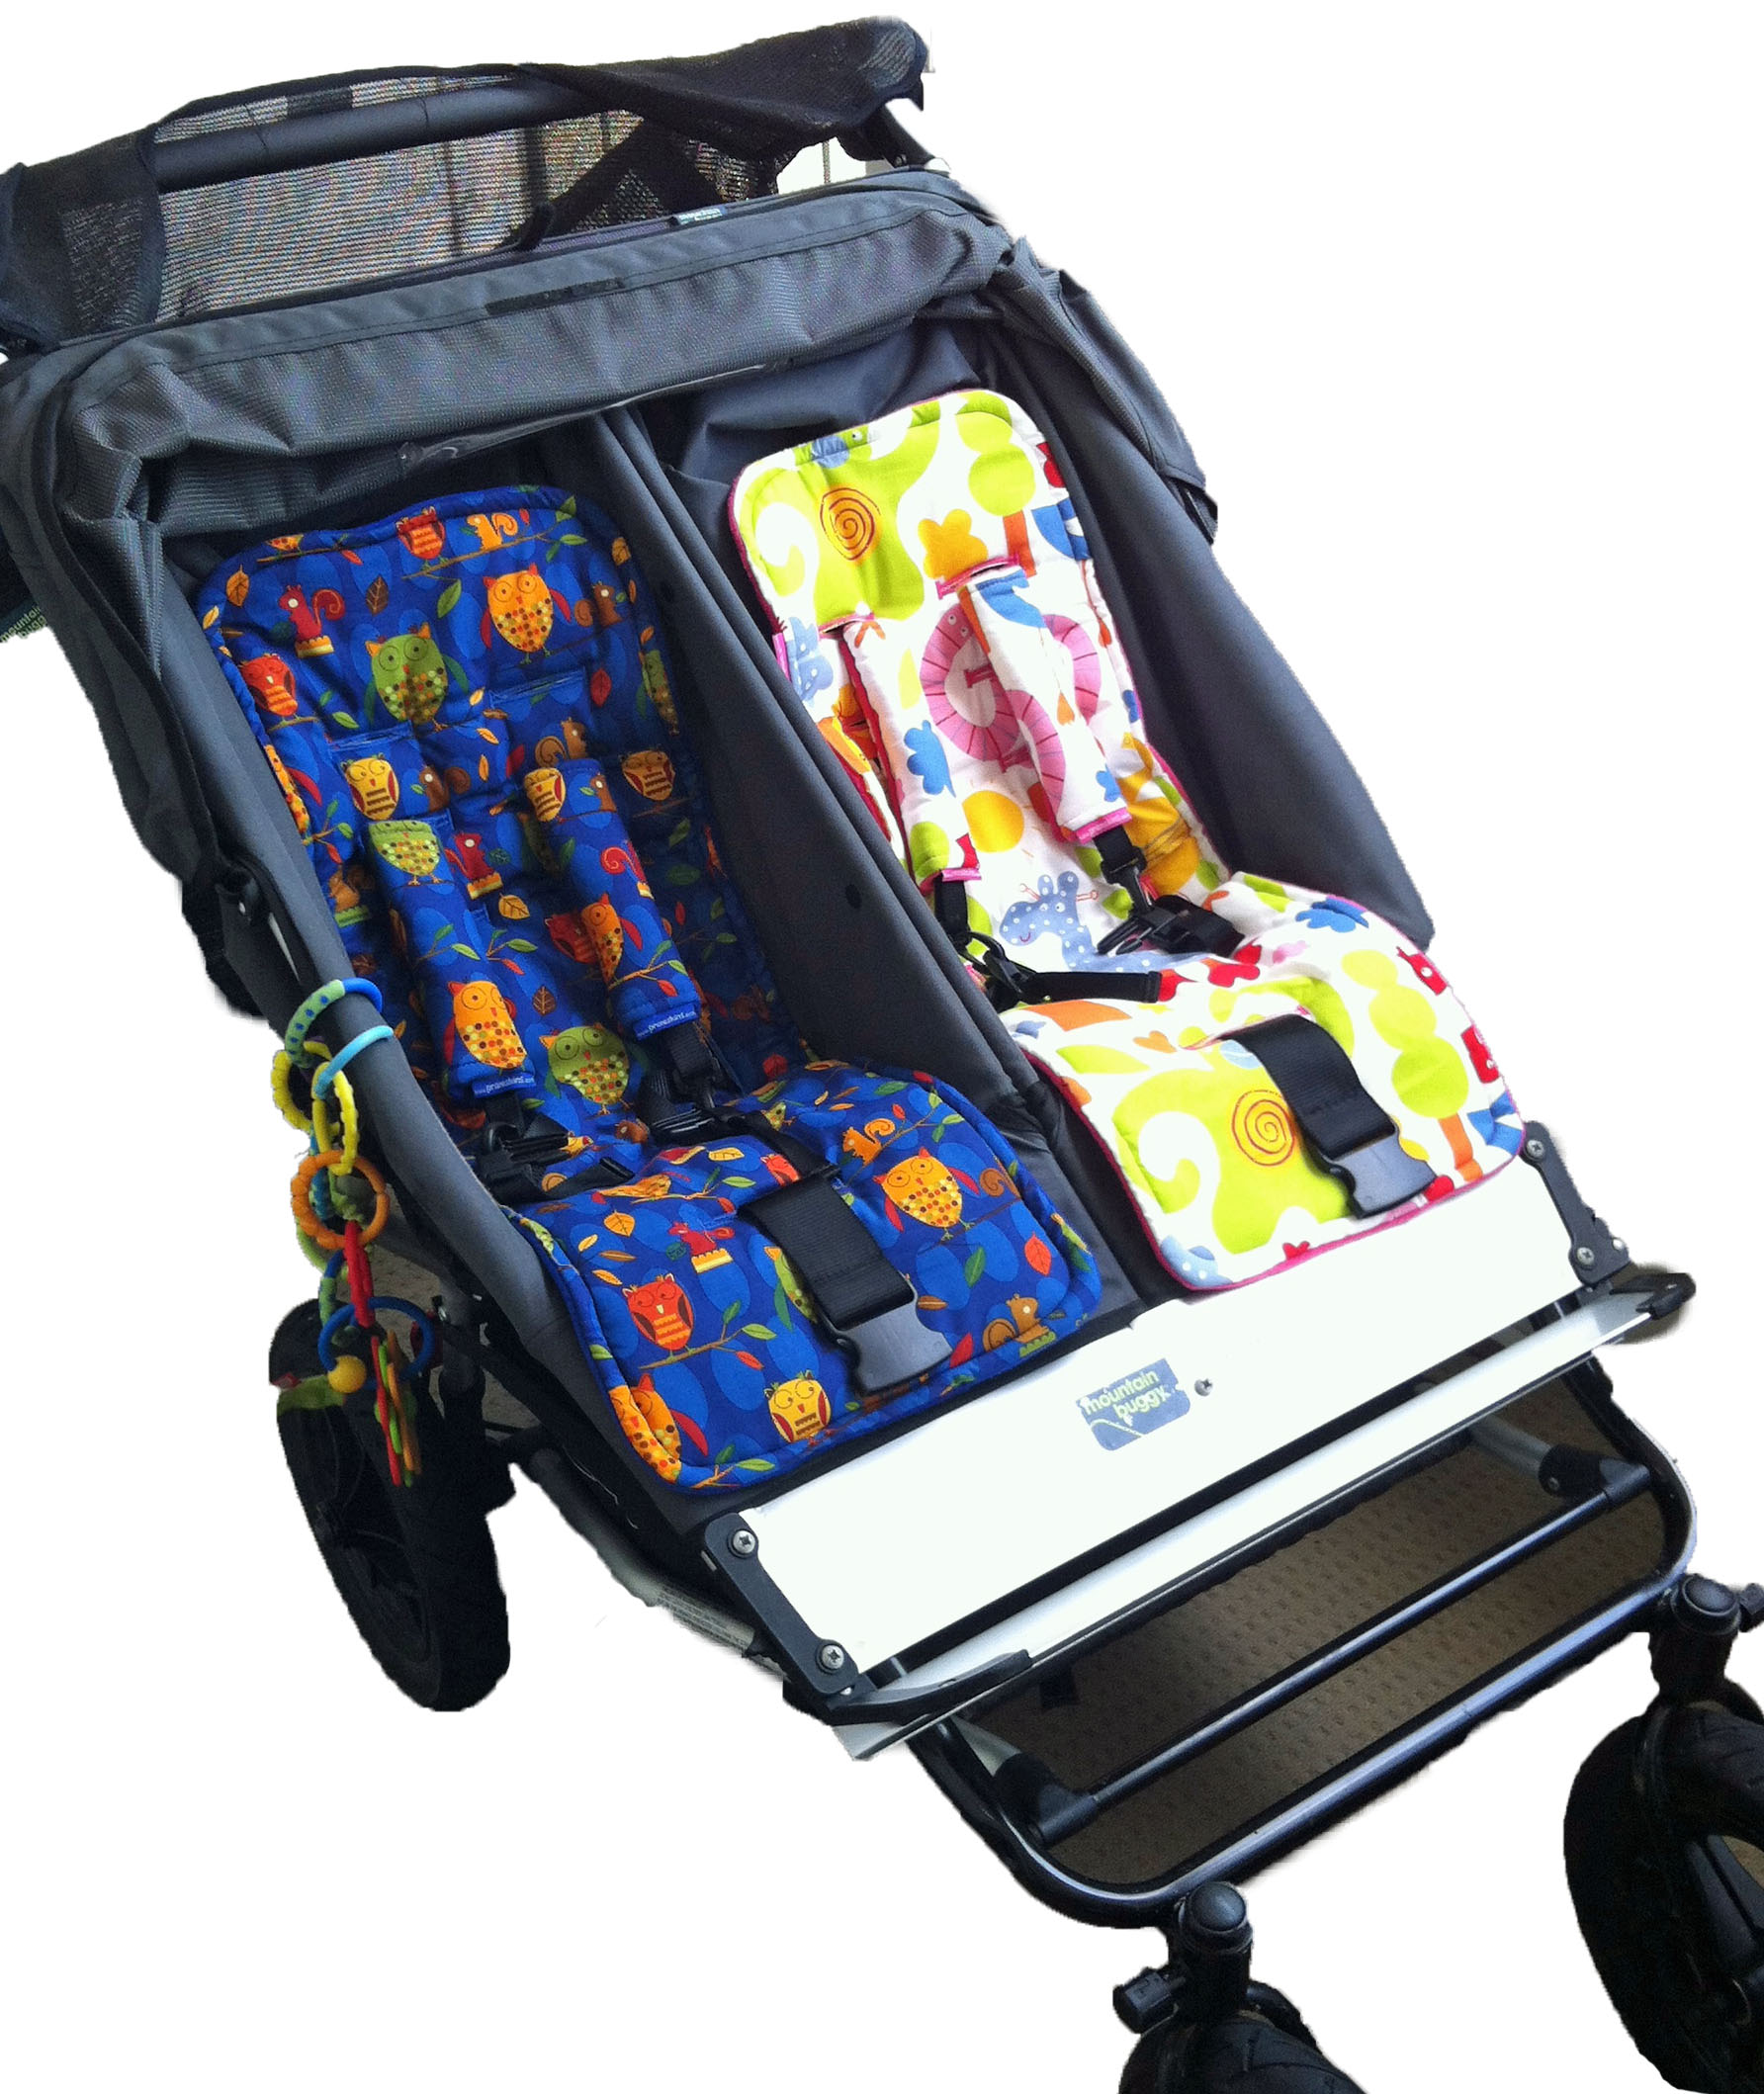 mb-duo-pram-liners-in-pram-3.jpg